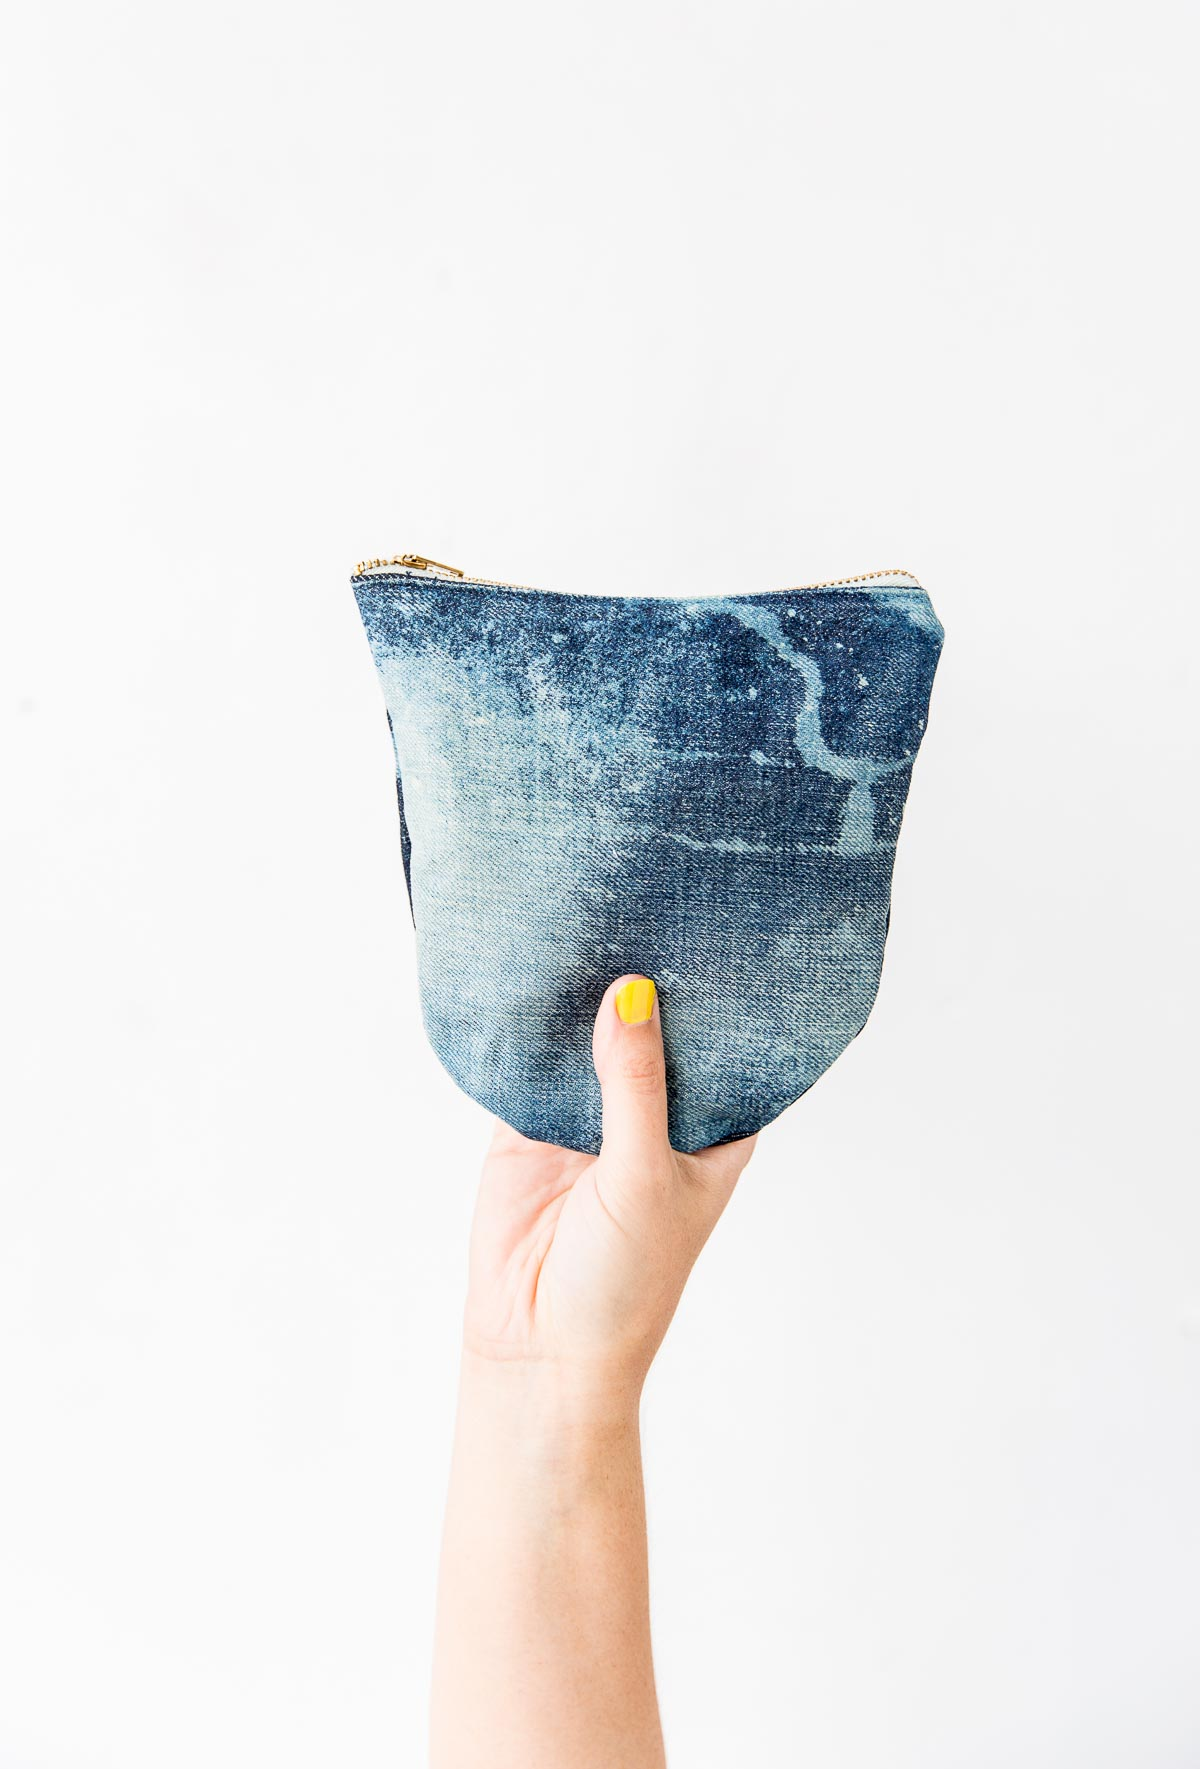 Jean Queen How To Transform Old Jeans Into A Denim Clutch In About An Hour